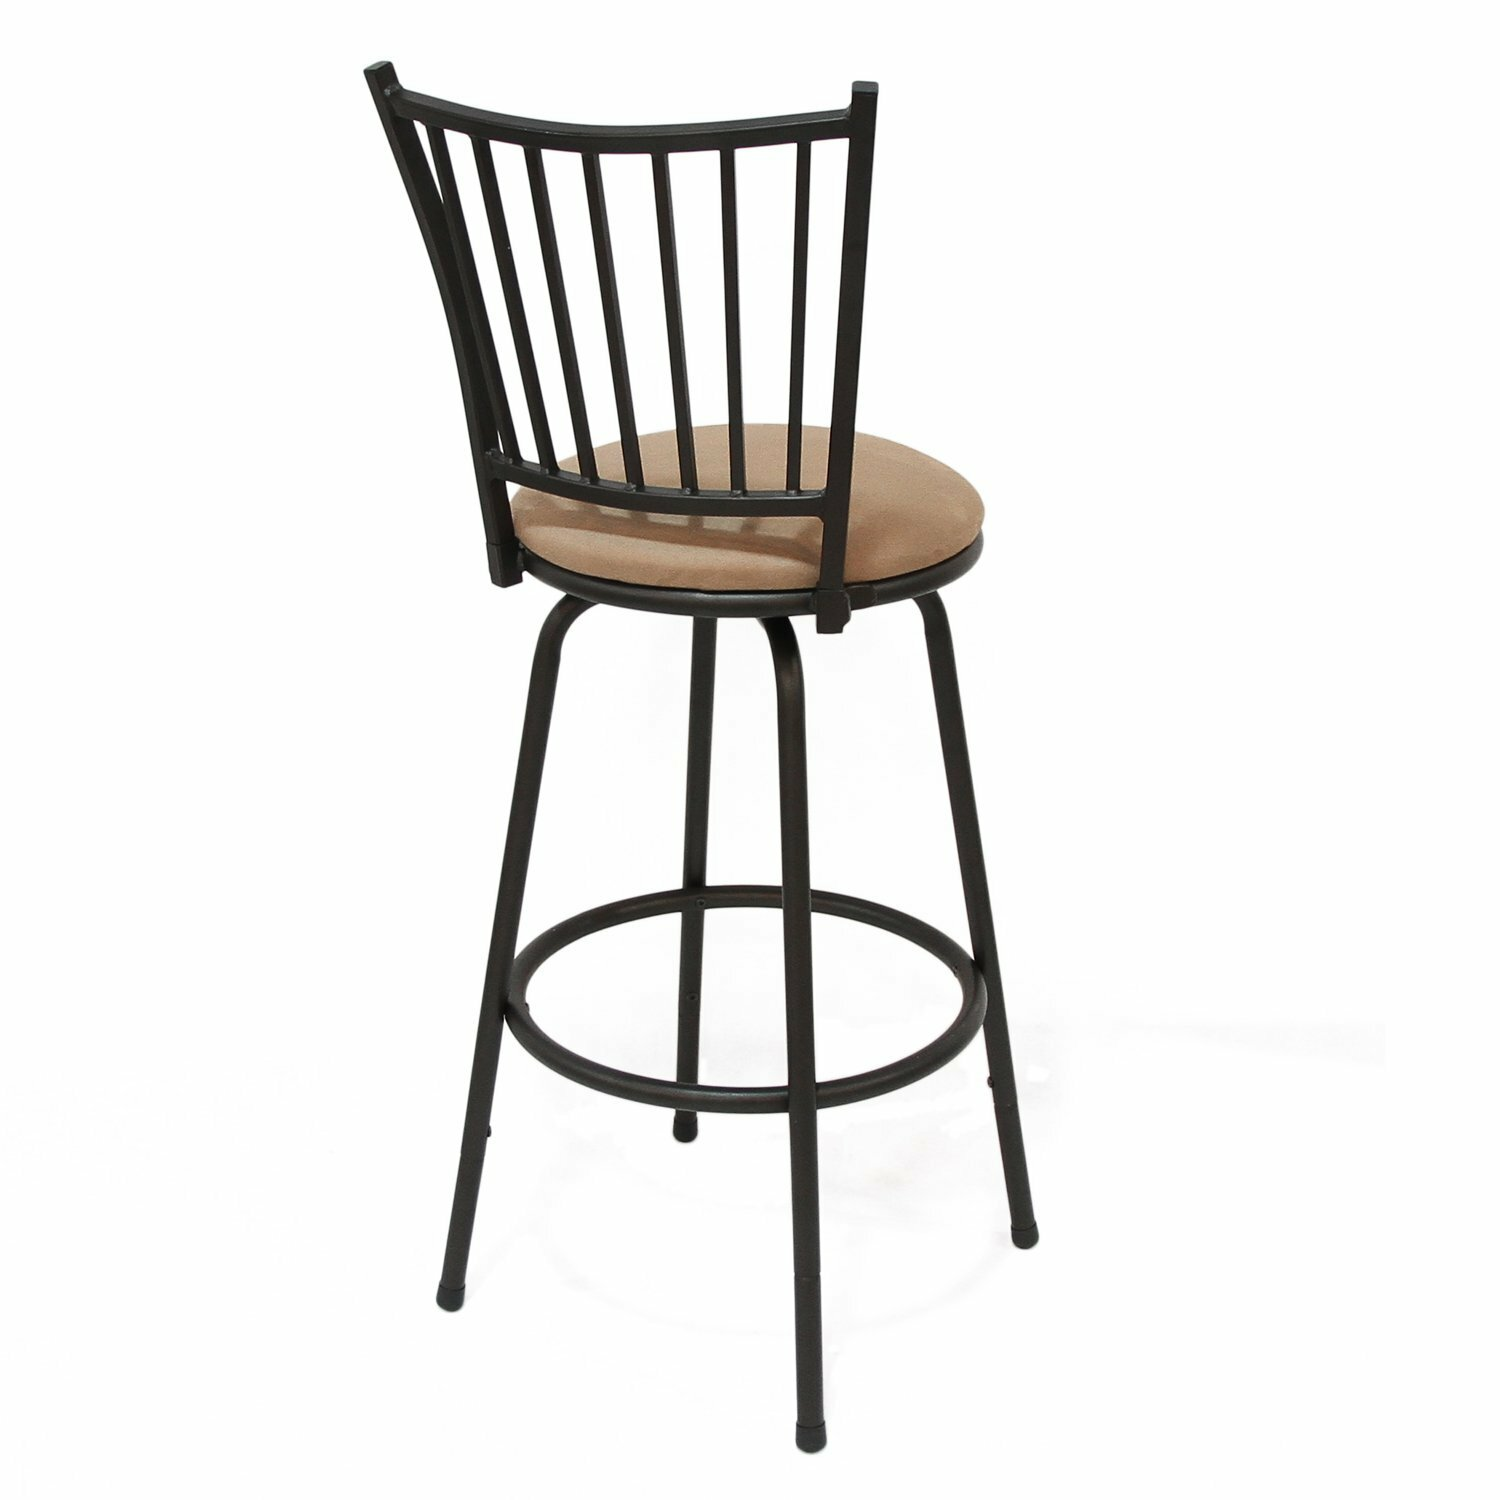 AdecoTrading 29quot Bar Stool amp Reviews Wayfair Supply : Adeco Trading 29 Bar Stool CH0259 from www.wayfairsupply.com size 1500 x 1500 jpeg 87kB